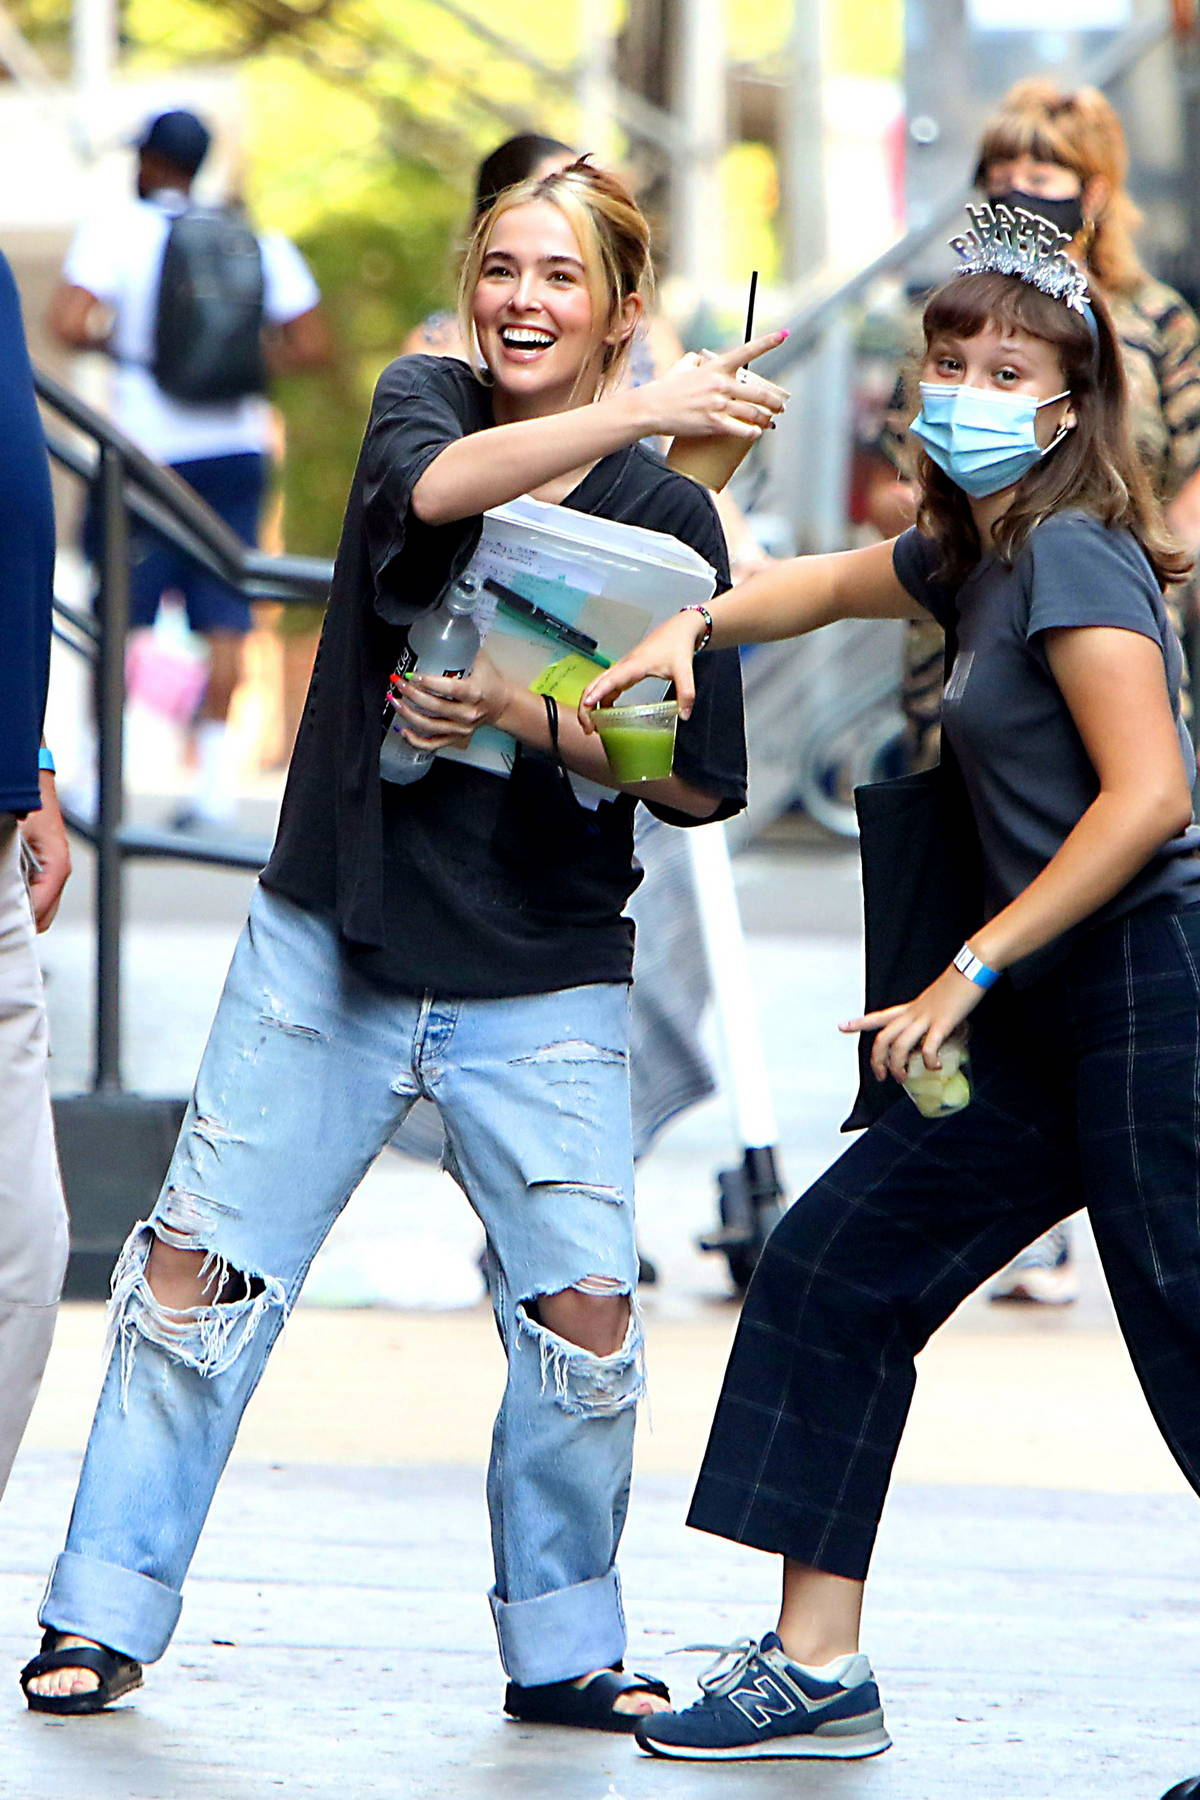 Zoey Deutch is all smiles while on the set of 'Not Okay' in New York City